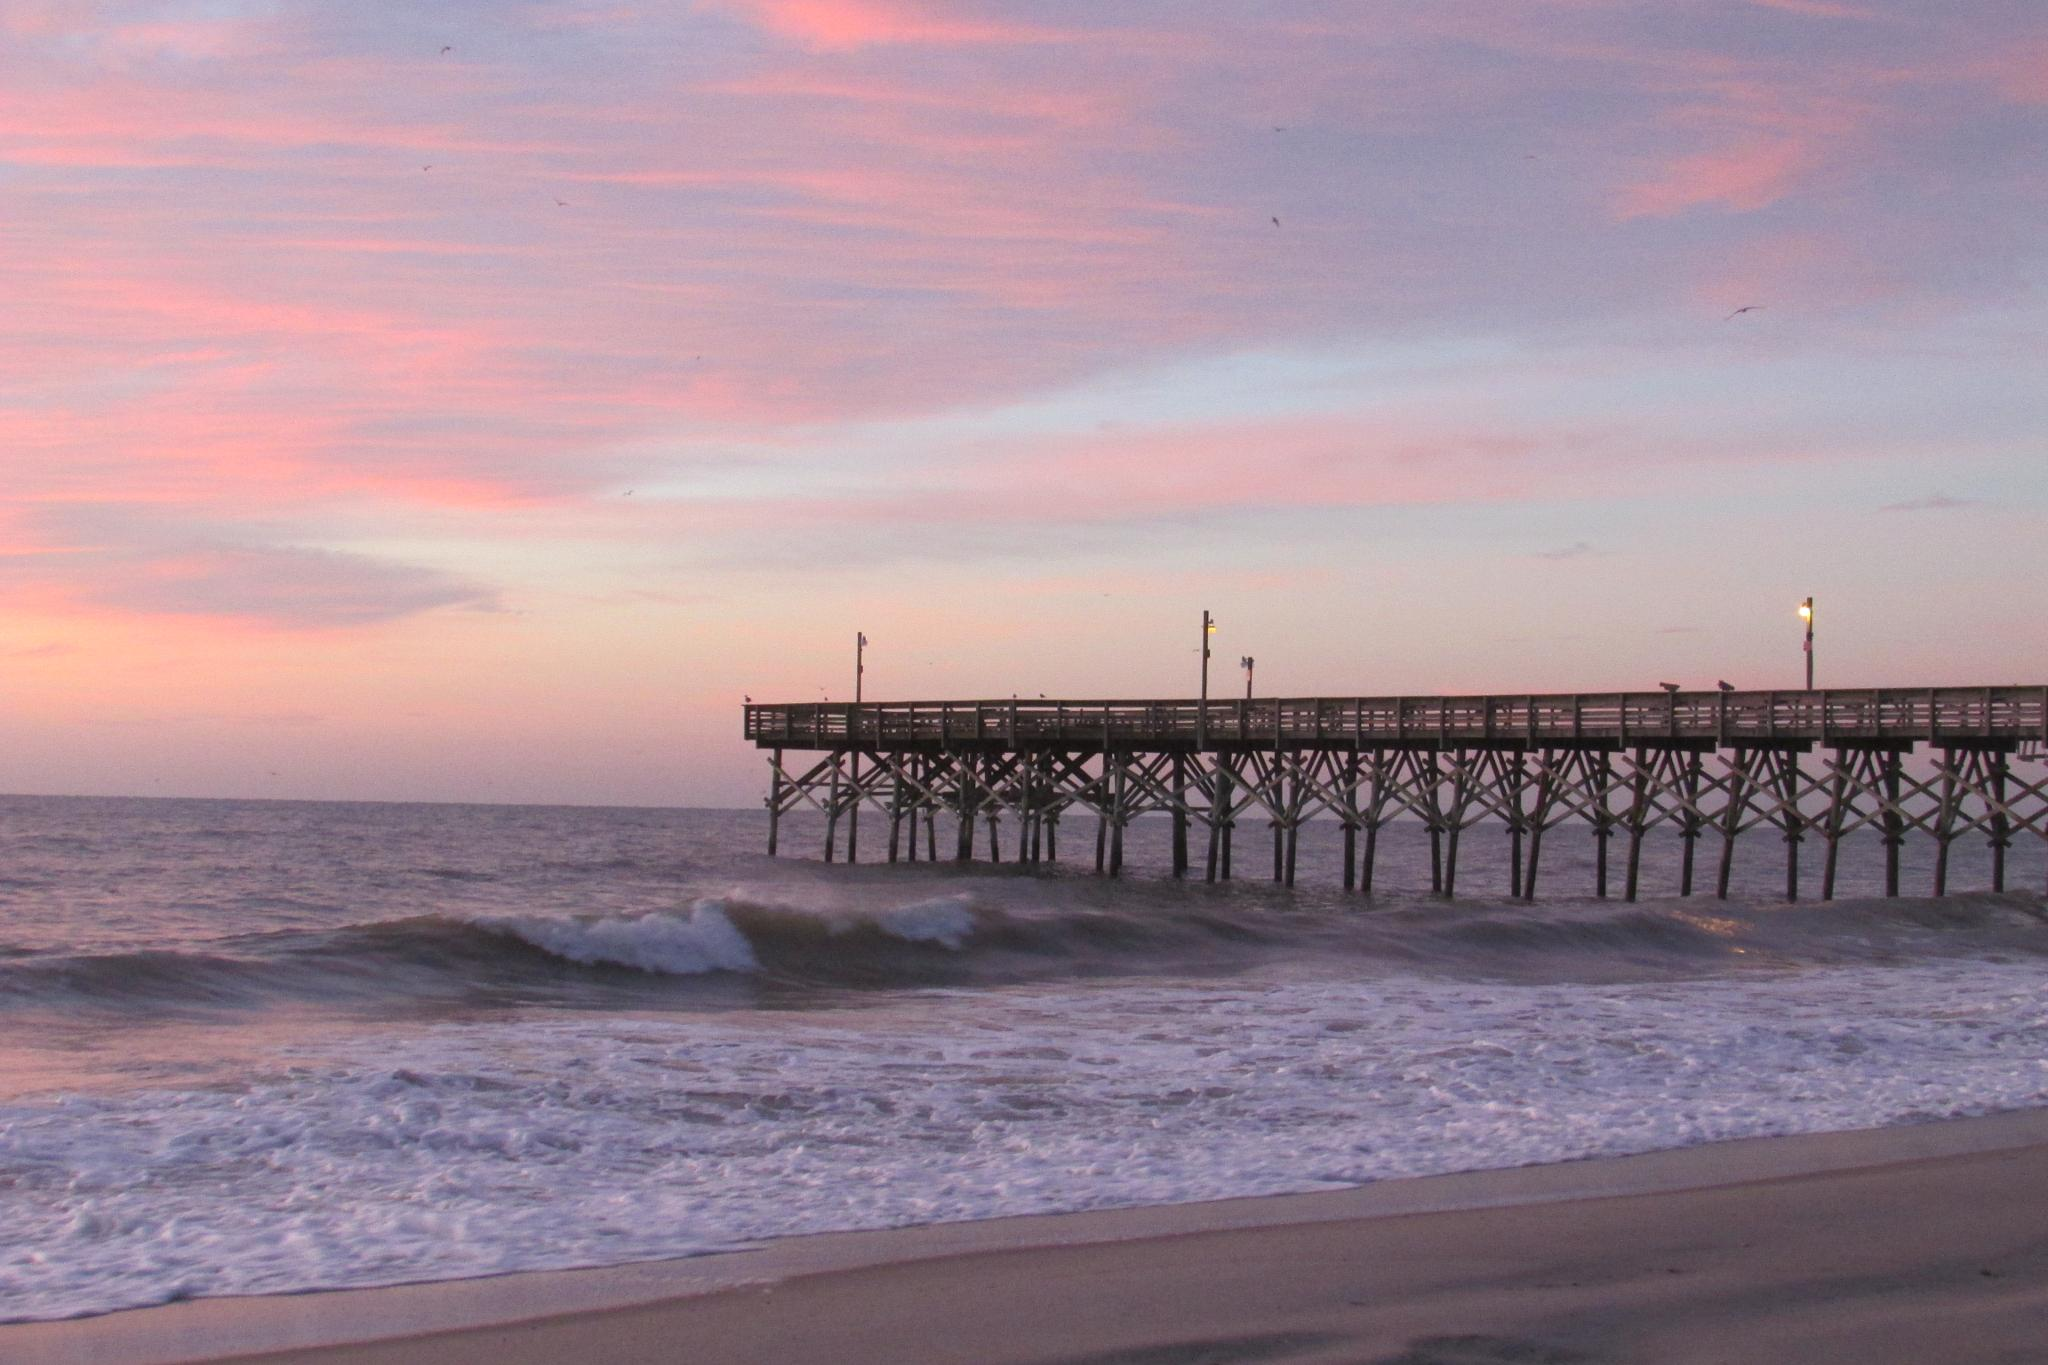 Myrtle Beach Fishing Pier at Sunrise by Lisa Marshall Moore